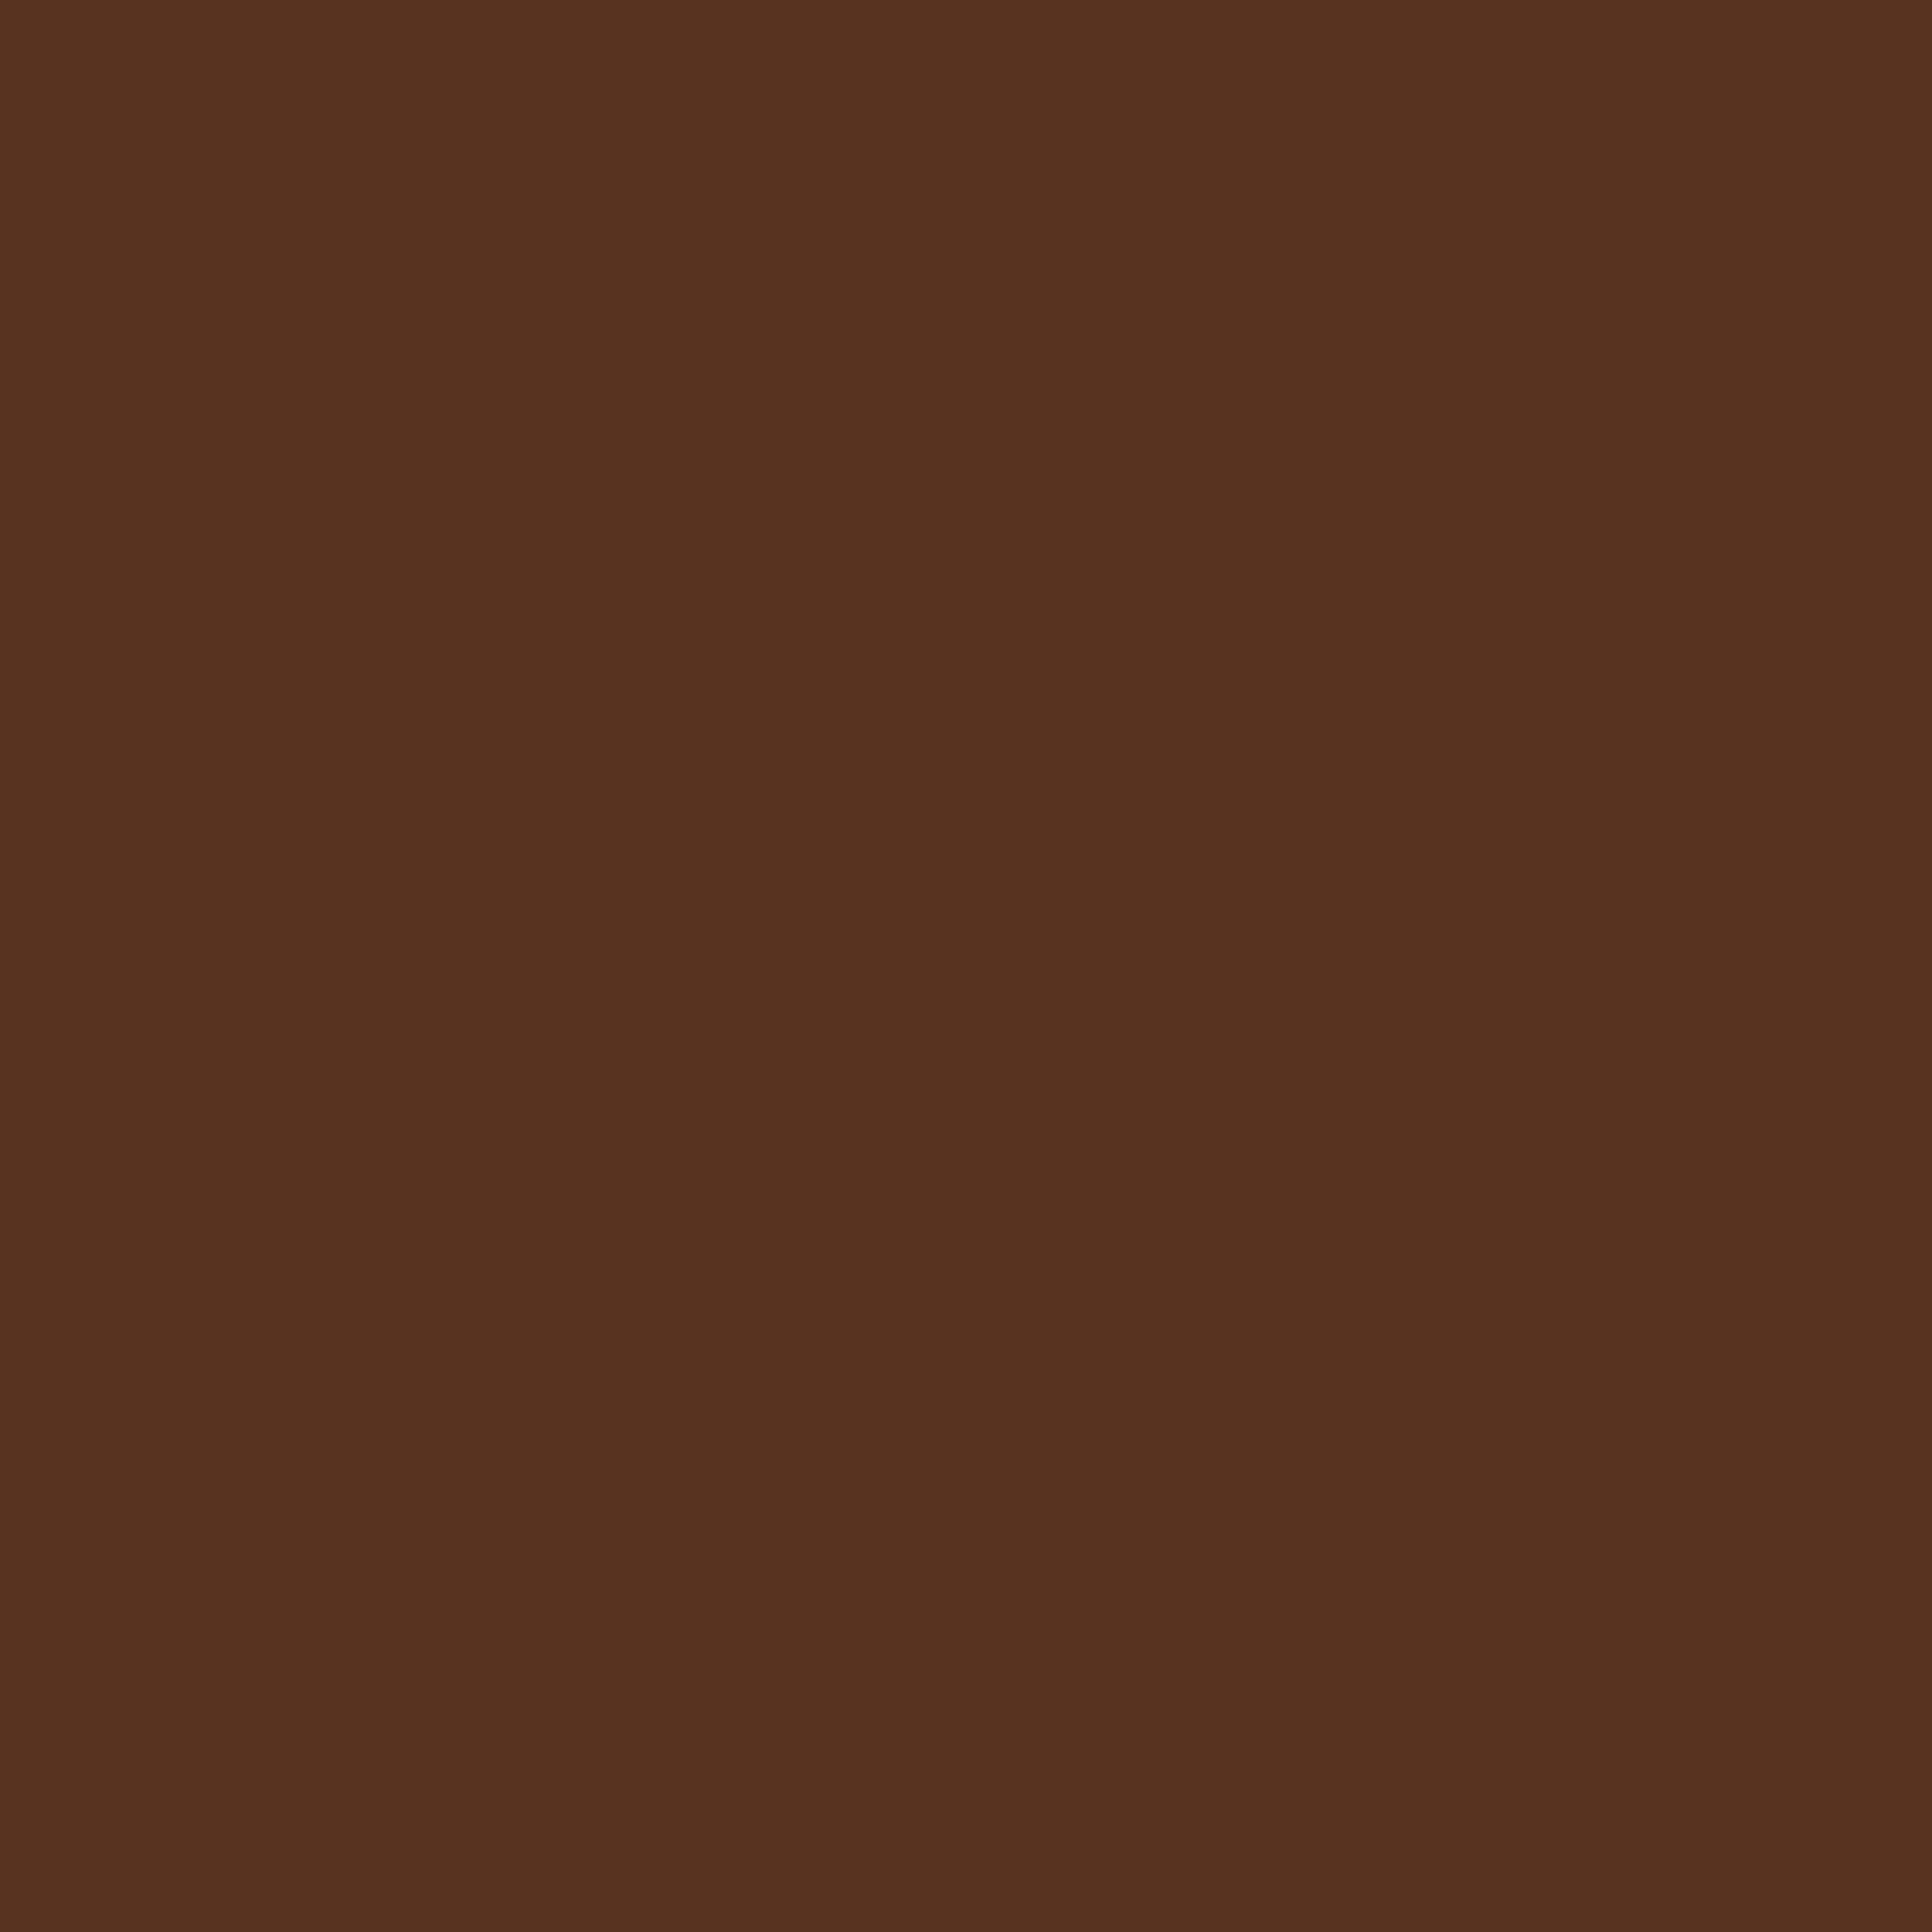 Colors: CBR Chestnut Brown